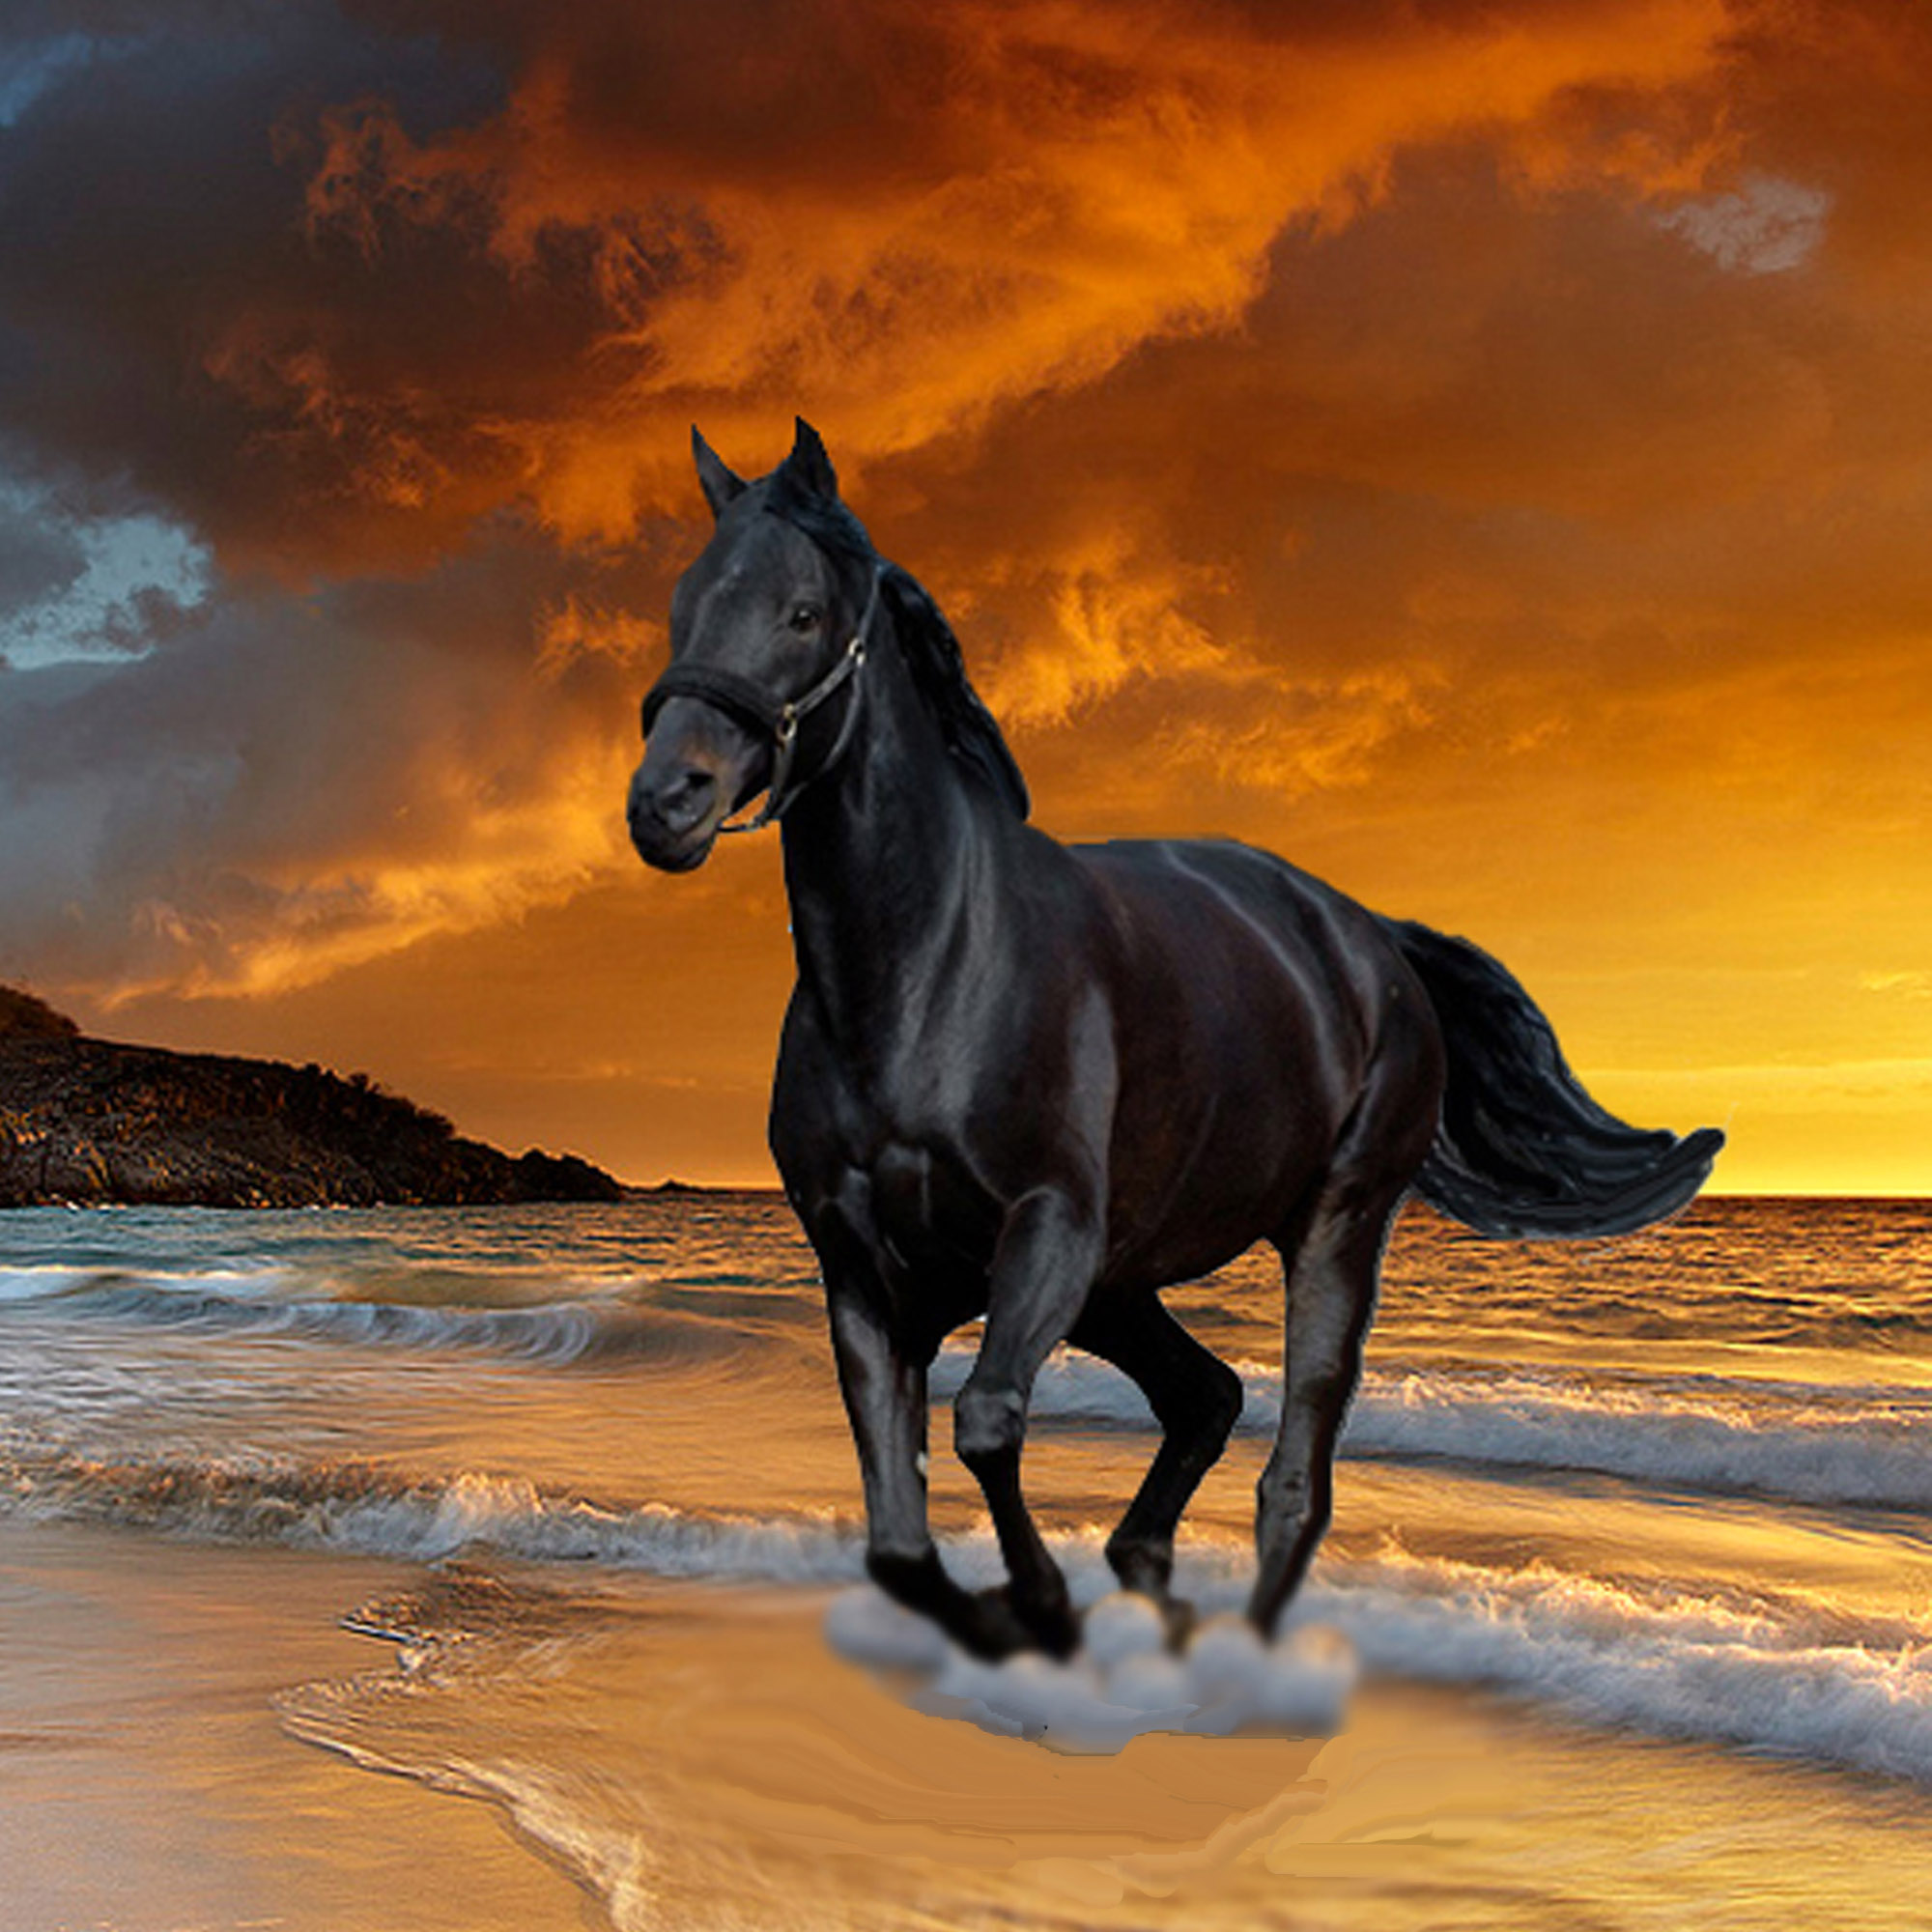 Black Beauty Stallion Horse Image Free Stock Photo Public Domain Photo Cc0 Images